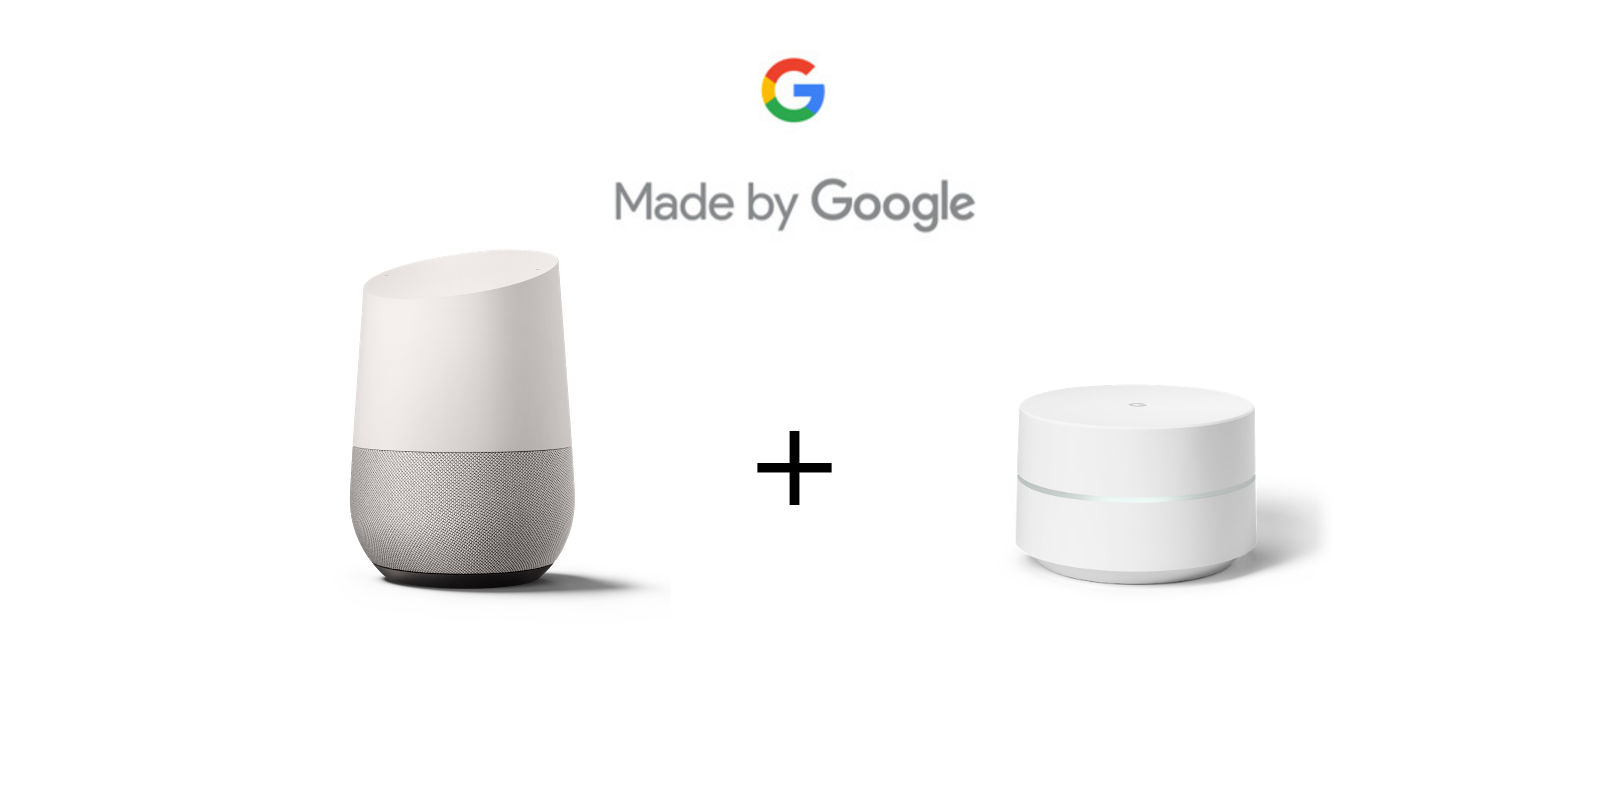 Google Home and Google WiFi now available for purchase in UK